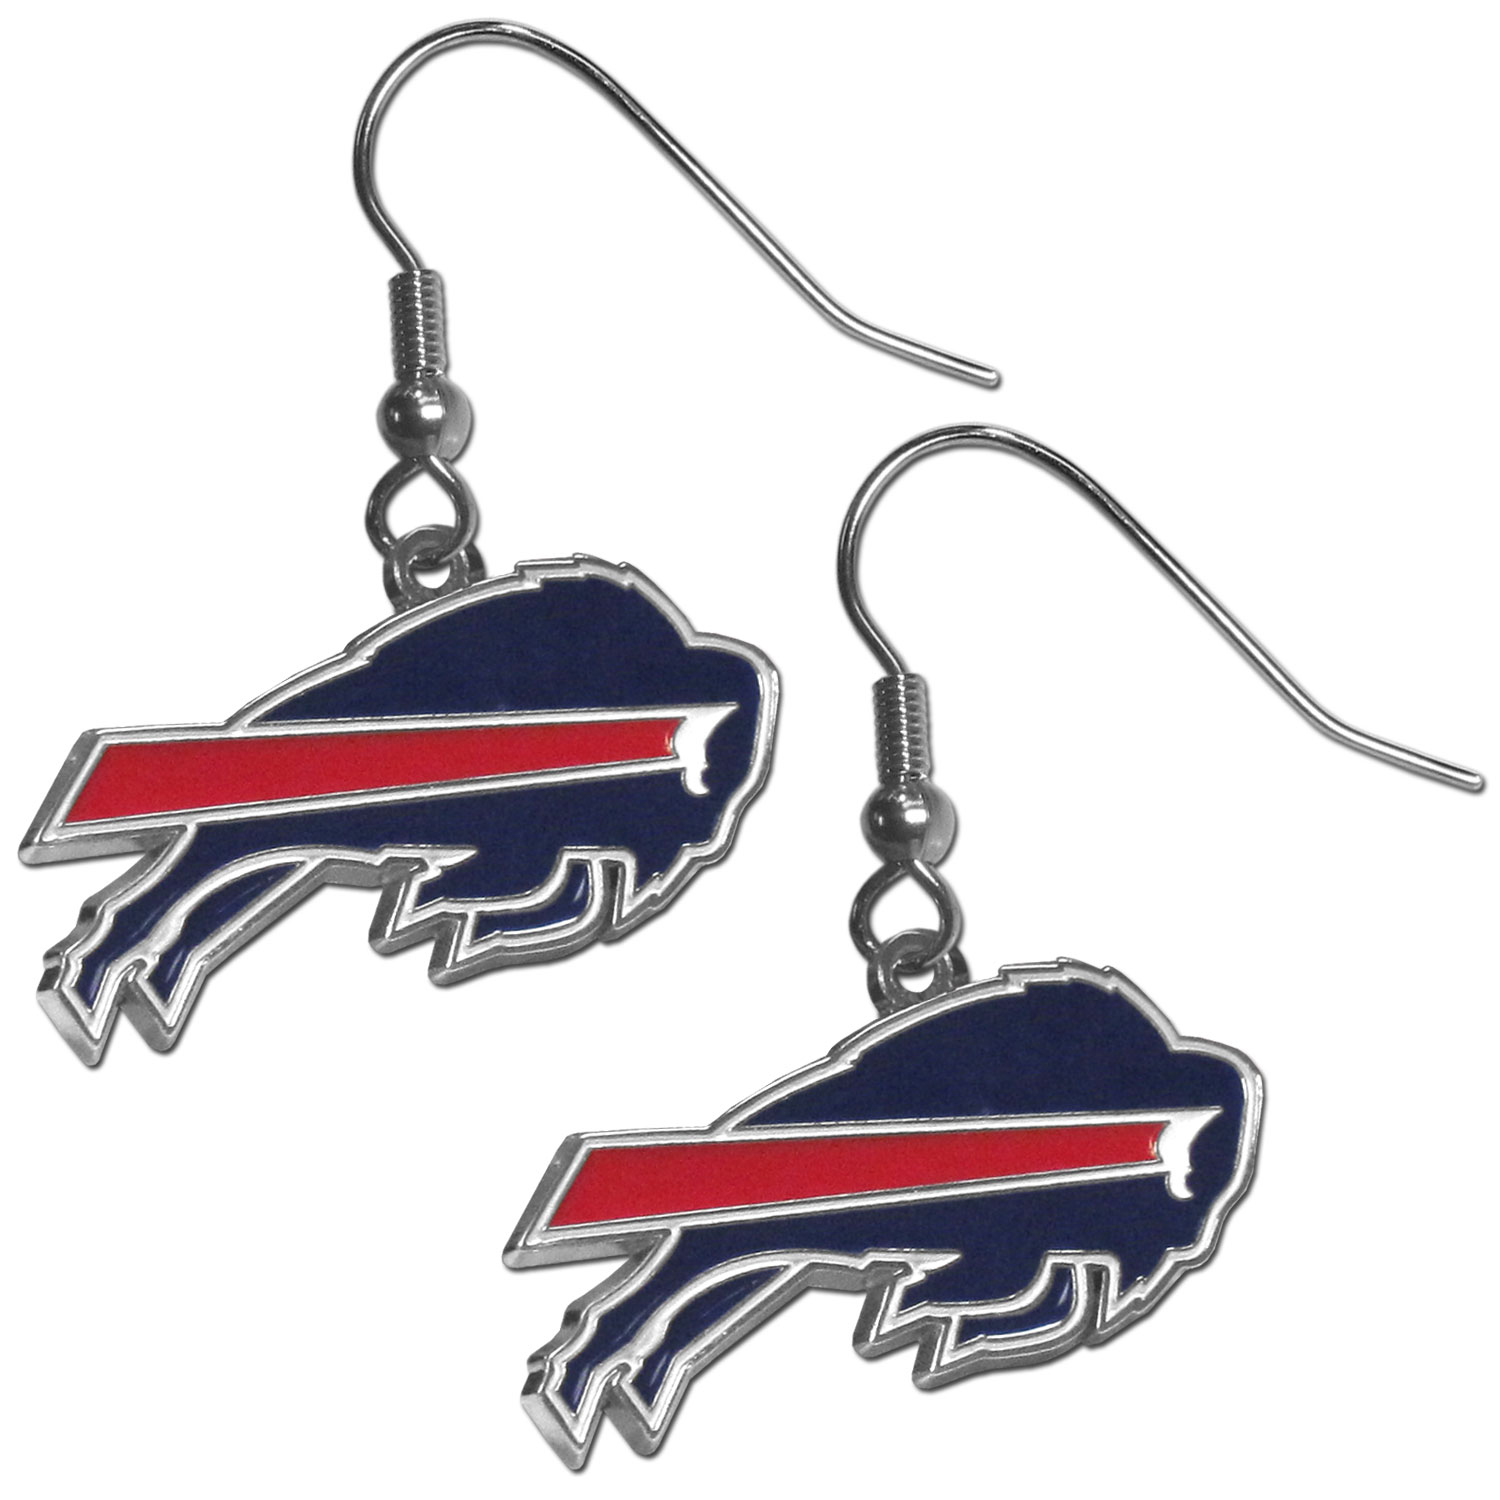 Buffalo Bills Chrome Dangle Earrings - Officially licensed NFL Buffalo Bills dangle earrings have fully cast Buffalo Bills charms with exceptional detail and a hand enameled finish. The Buffalo Bills earrings have a high polish nickel free chrome finish and hypoallergenic fishhook posts. Officially licensed NFL product Licensee: Siskiyou Buckle .com